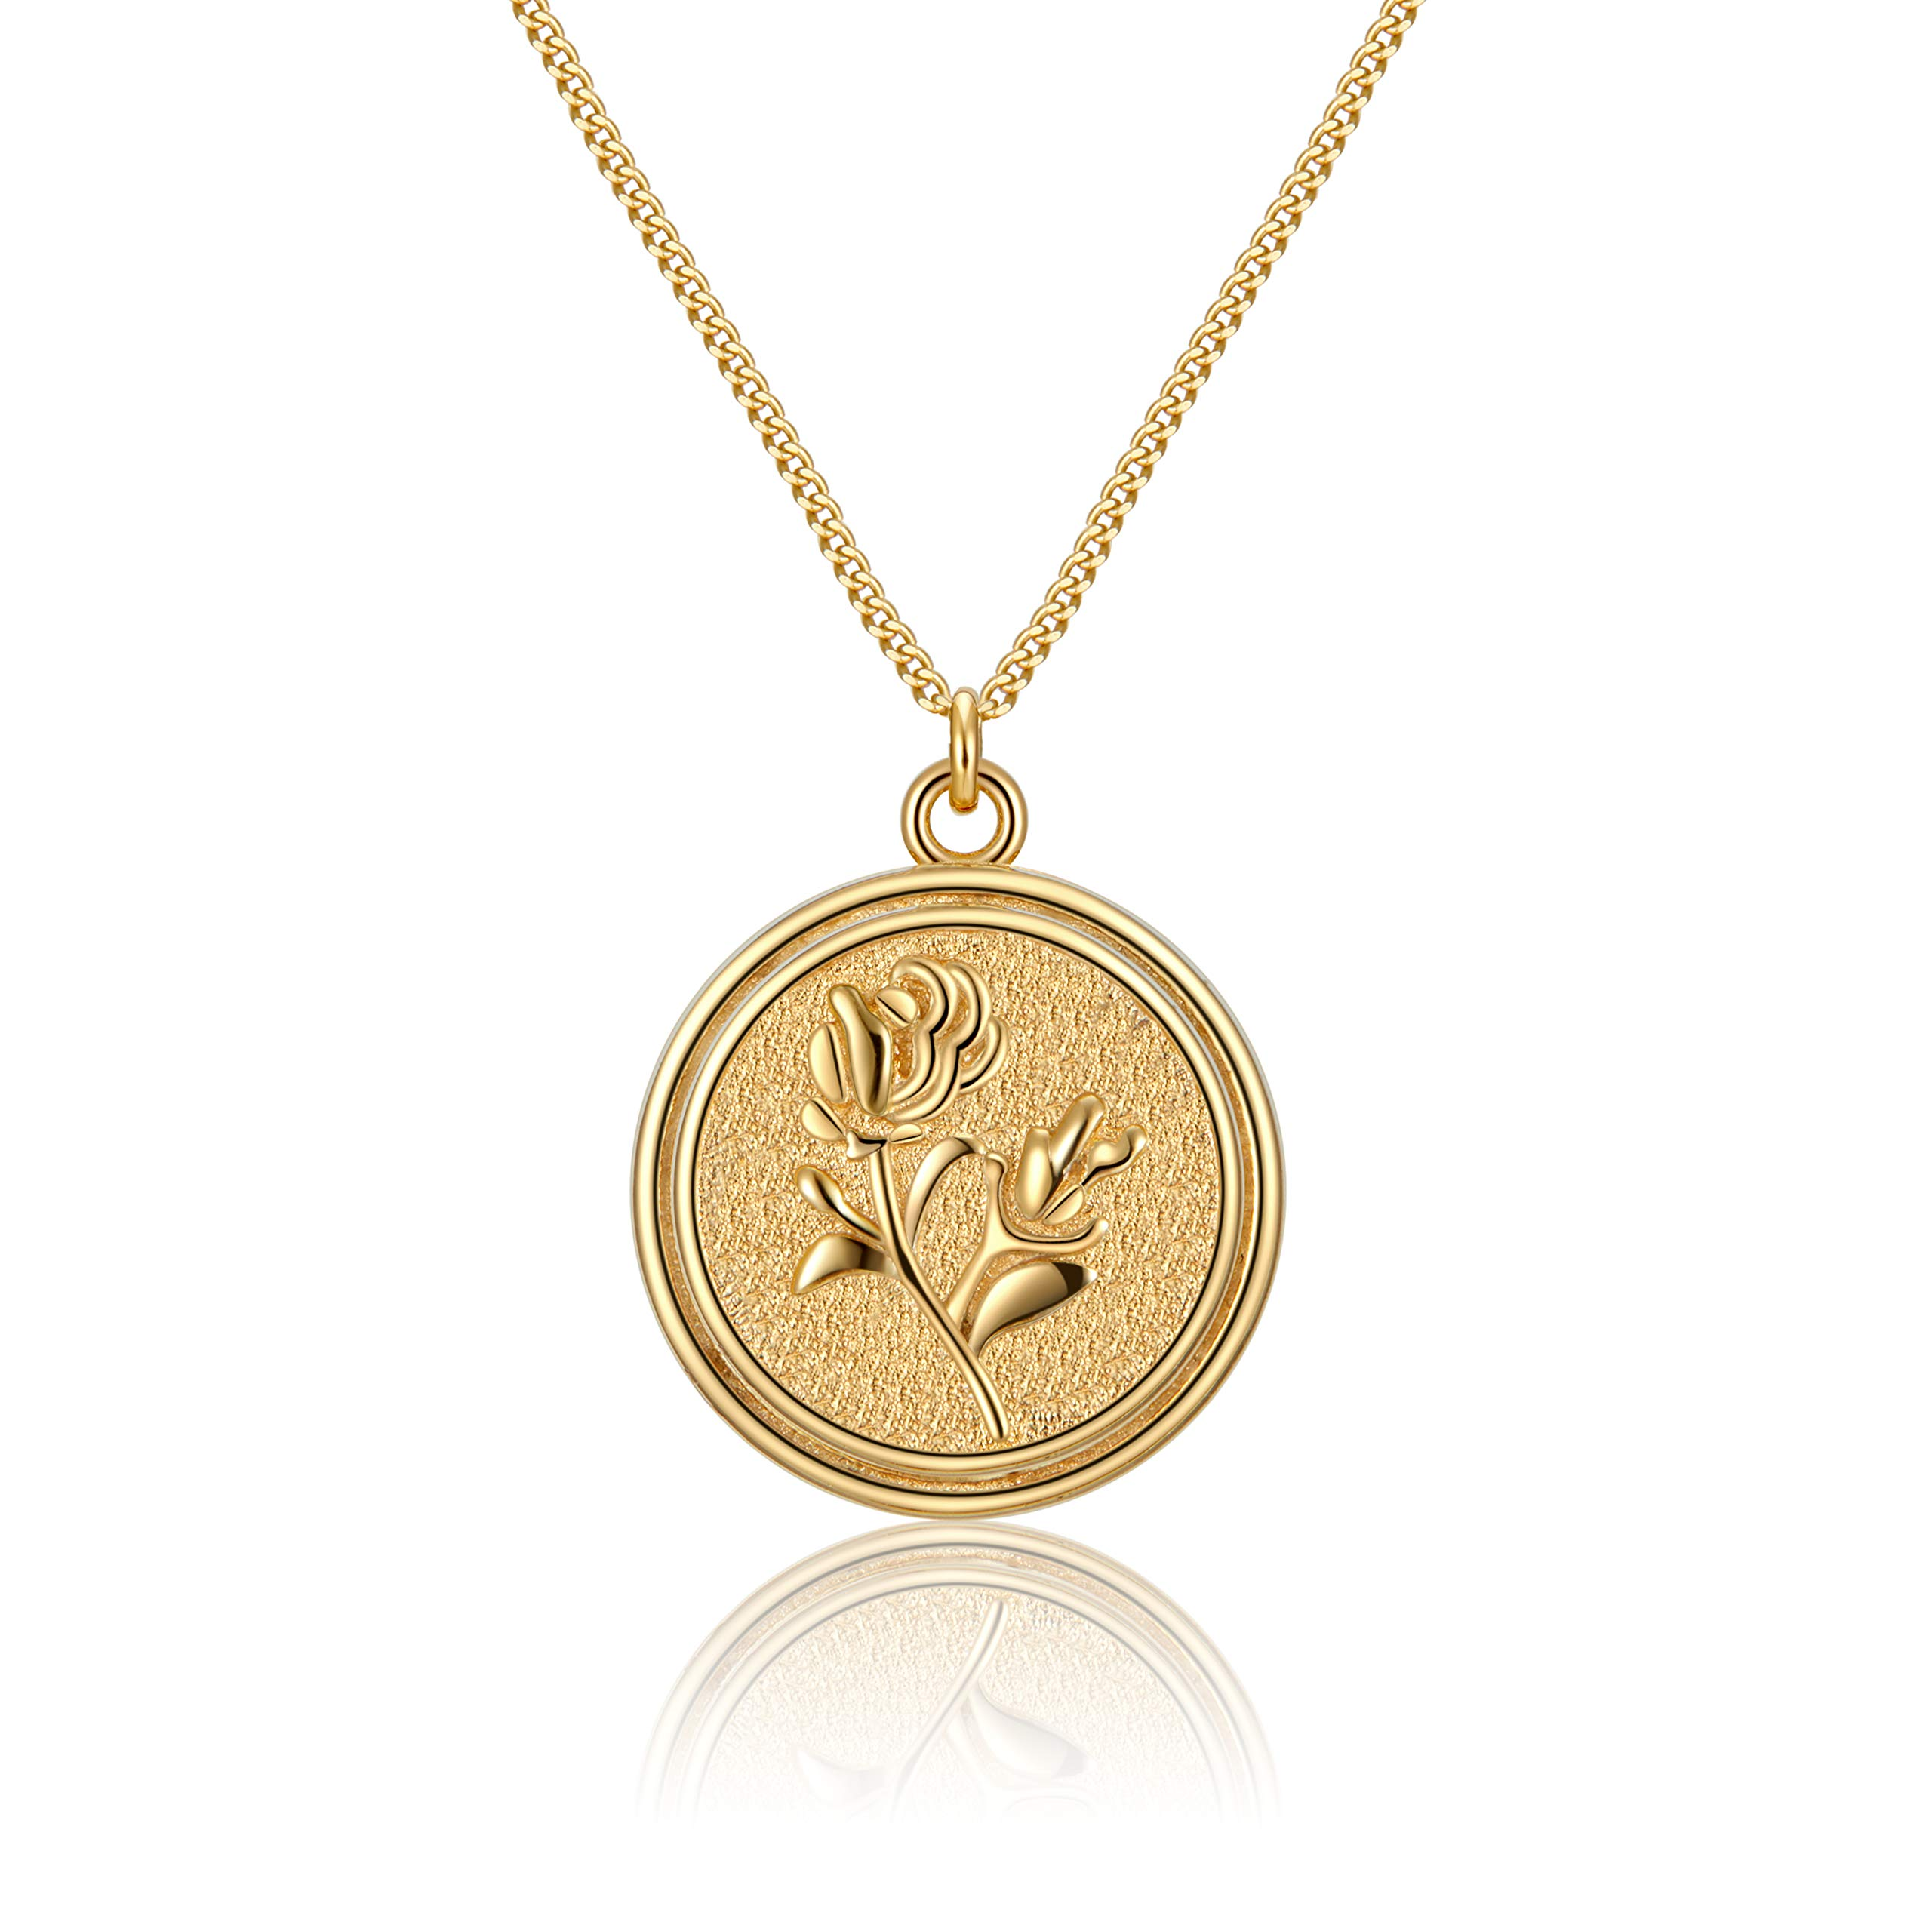 ACC PLANET Coin Pendant Necklace S925 Sterling Silver Disc Coin Medallion Vintage Valentine's Day Mother's Day Adjustable Minimalist Dainty Gold Charms Necklace for Women Girls Jewelry